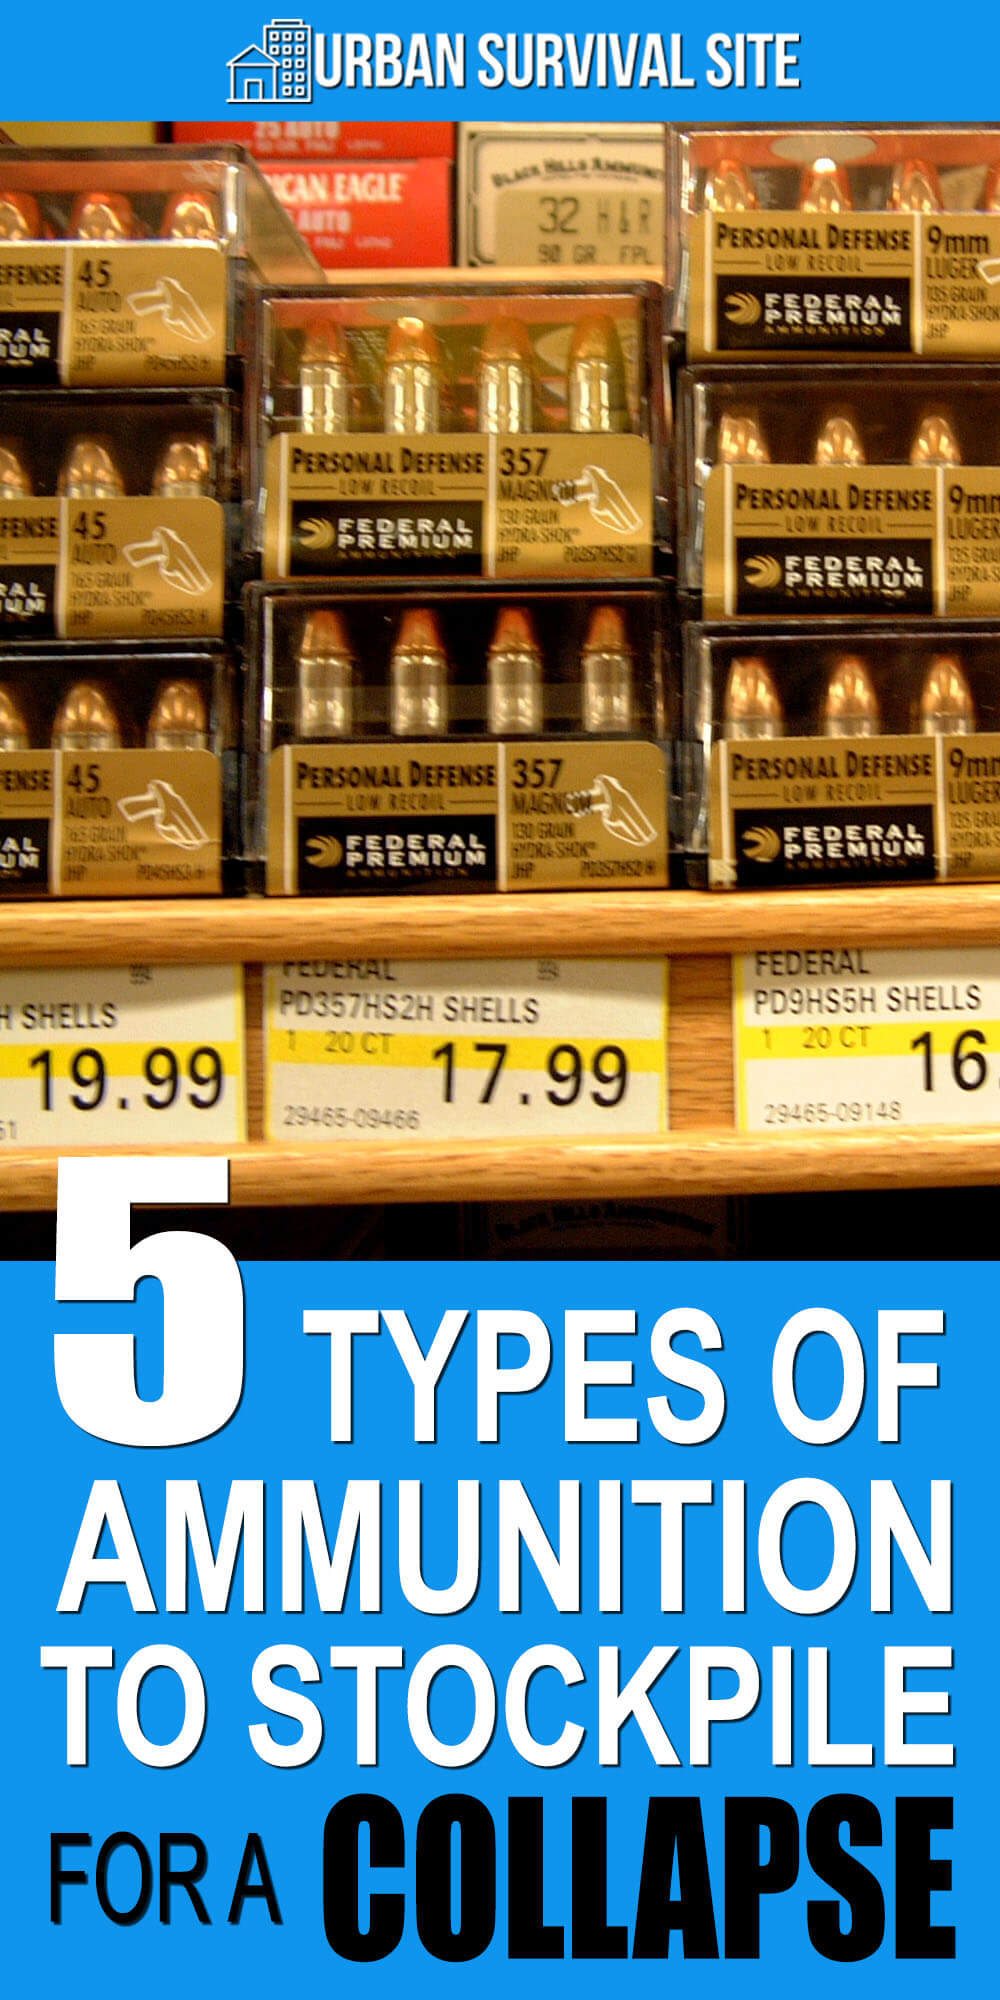 5 Types Of Ammunition To Stockpile For A Collapse